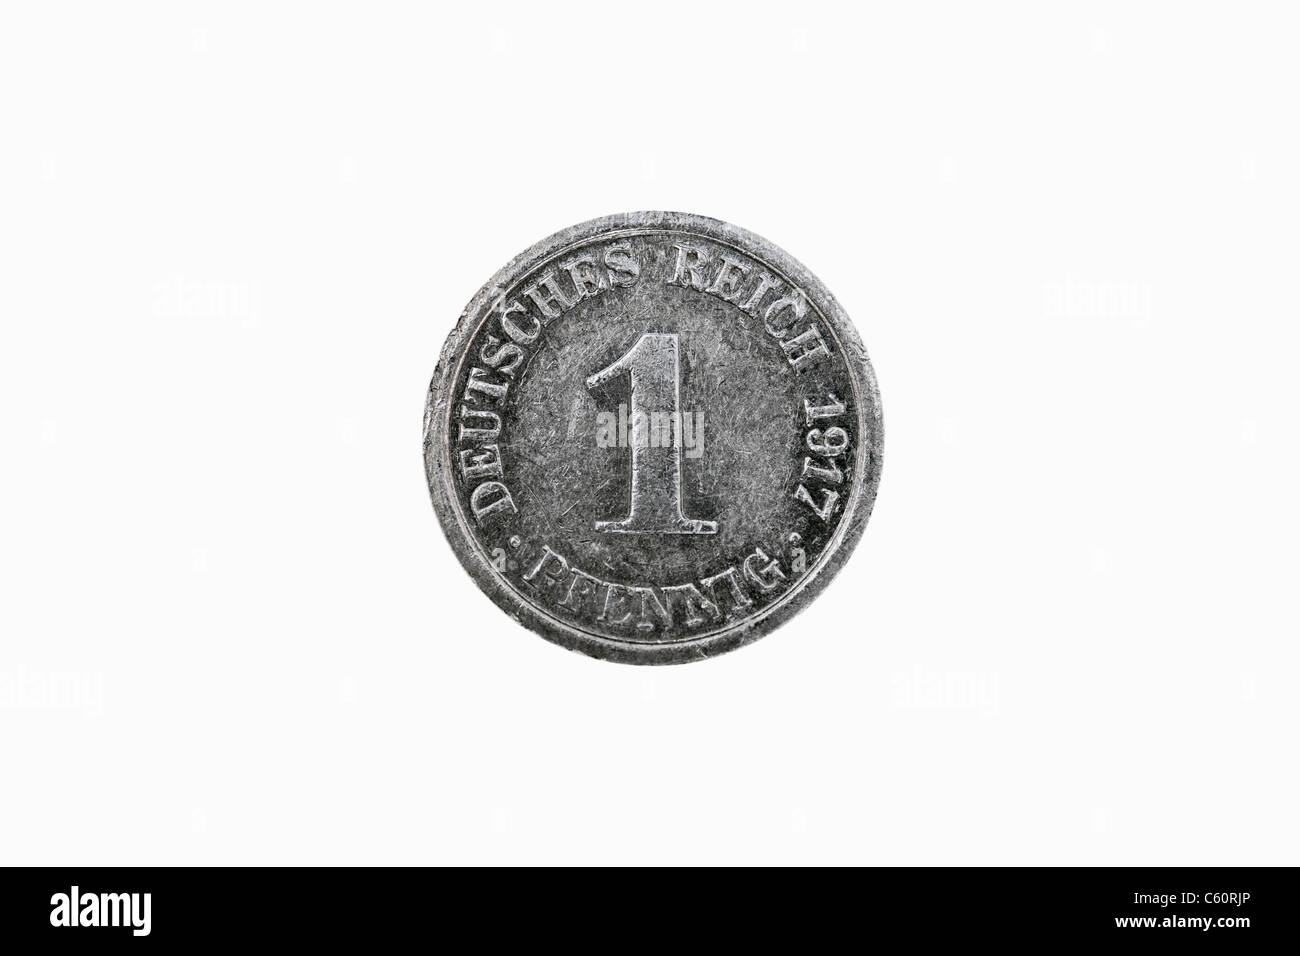 Detail photo of a 1 Pfennig coin of the German Reich from the year 1917 - Stock Image